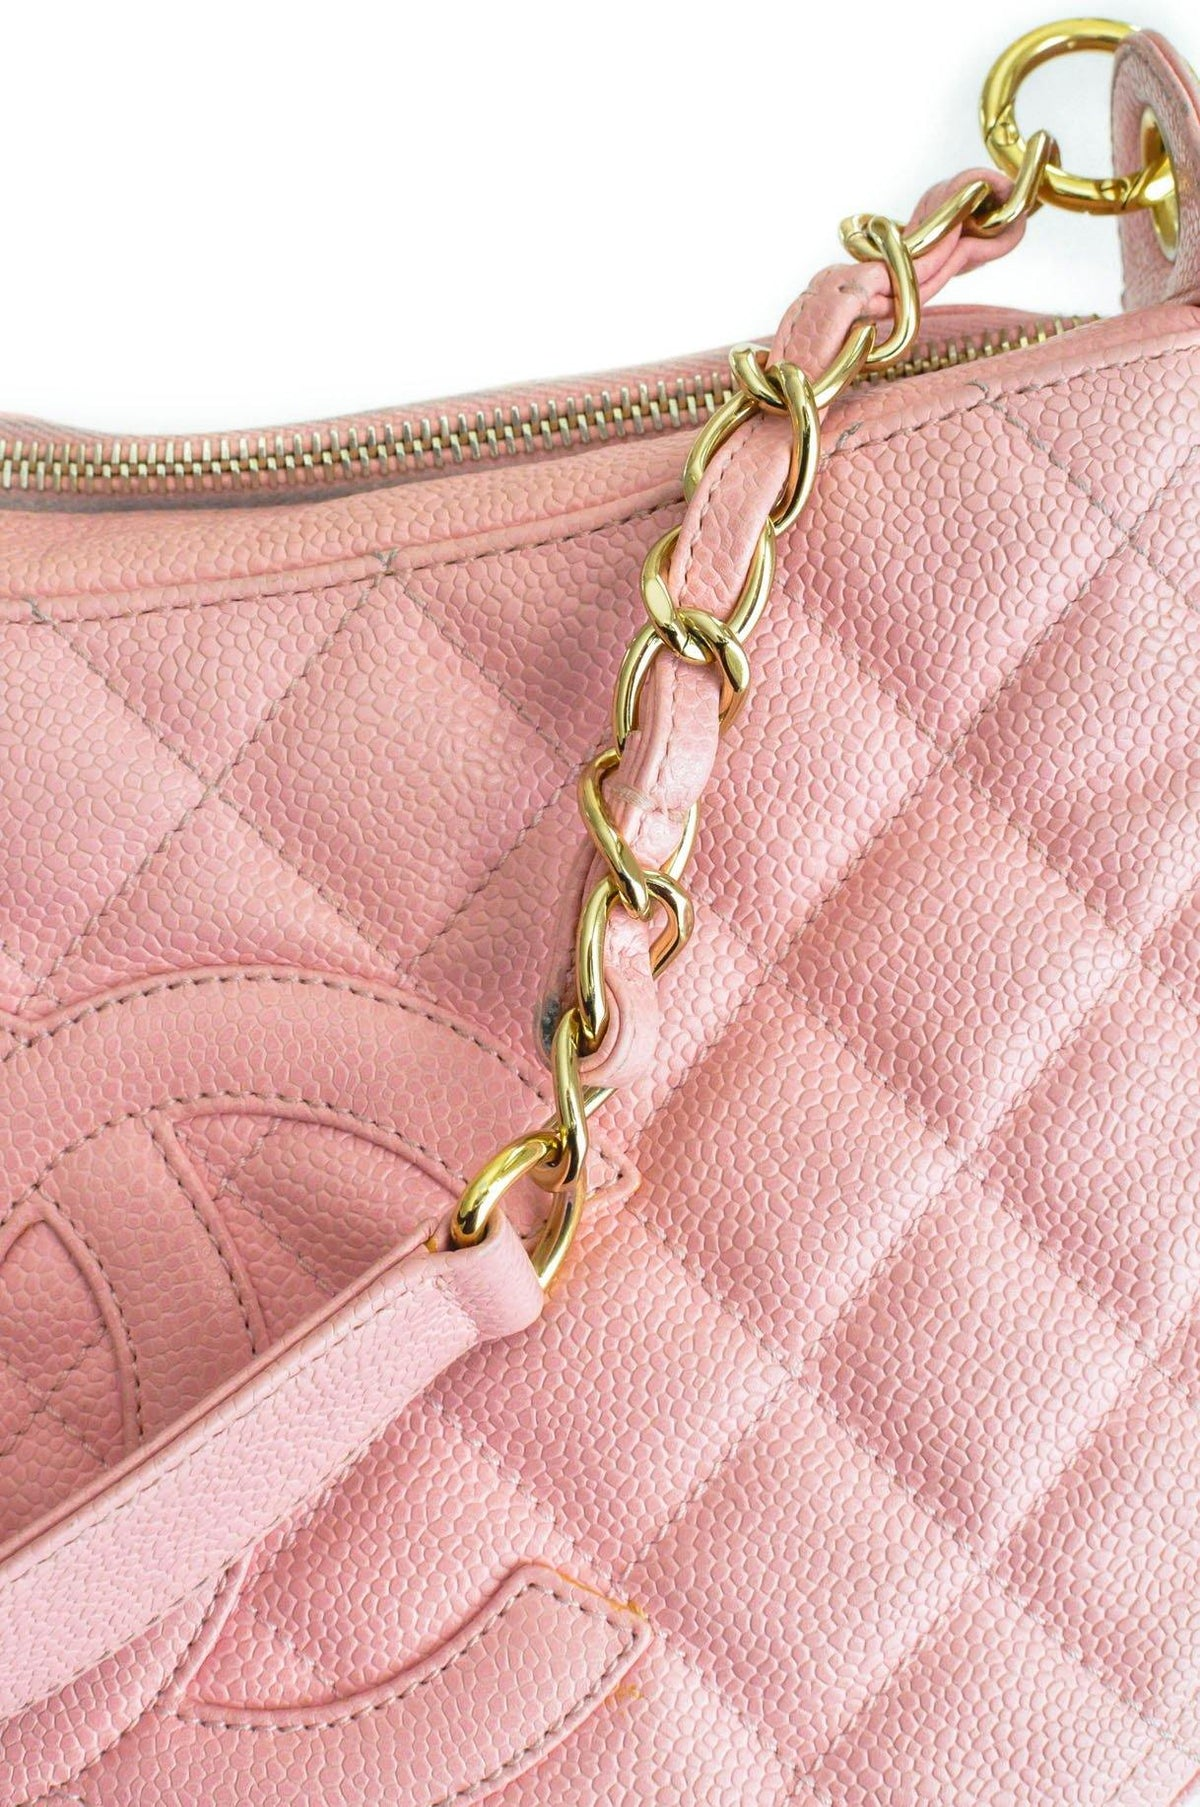 Vintage Chanel CC Pink Caviar Shoulder Bag from Sweet and Spark.